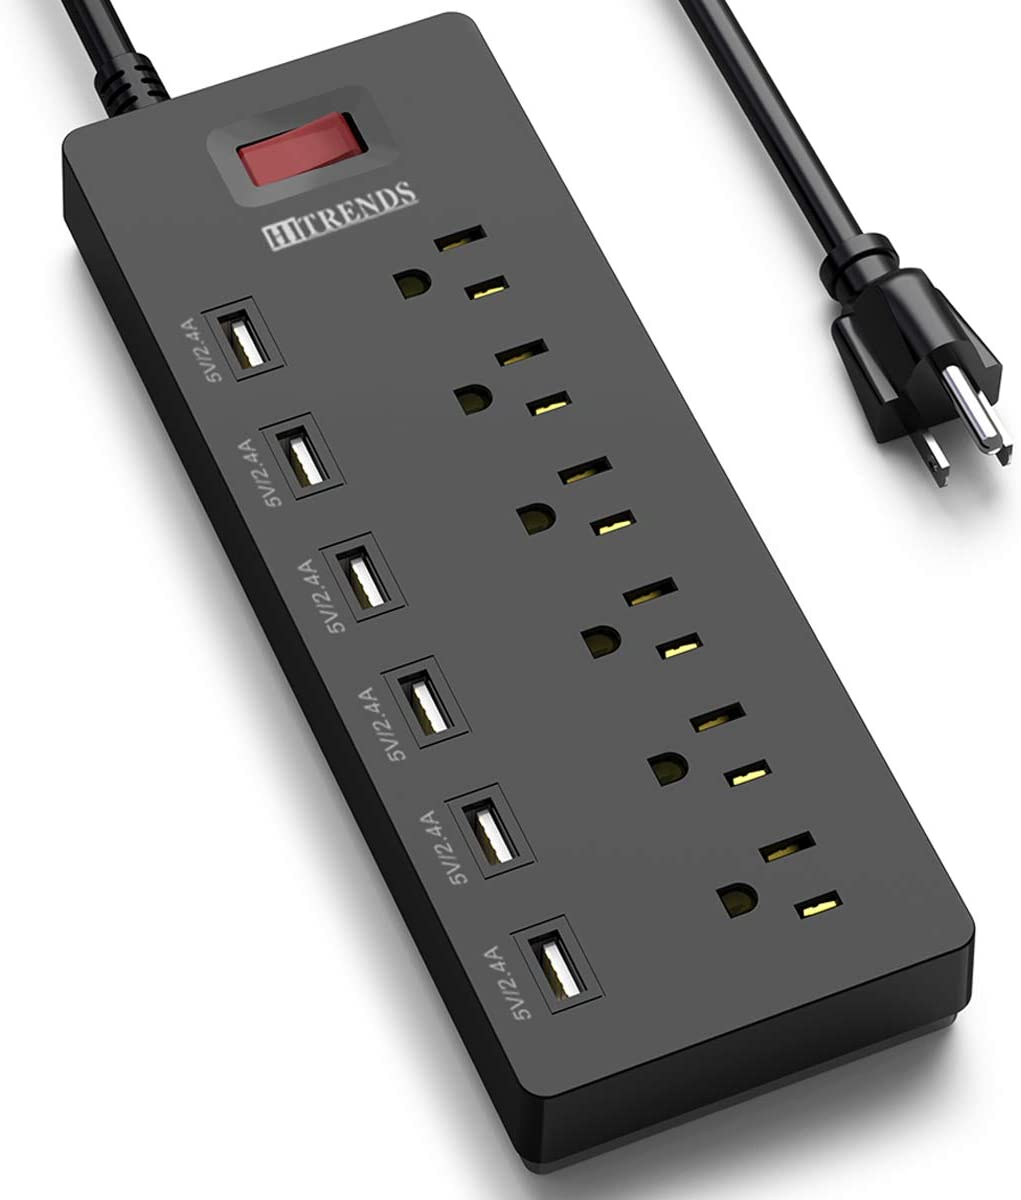 Power Strip HITRENDS Surge Protector AC Outlets with New products world's highest quality popular USB 5% OFF 6